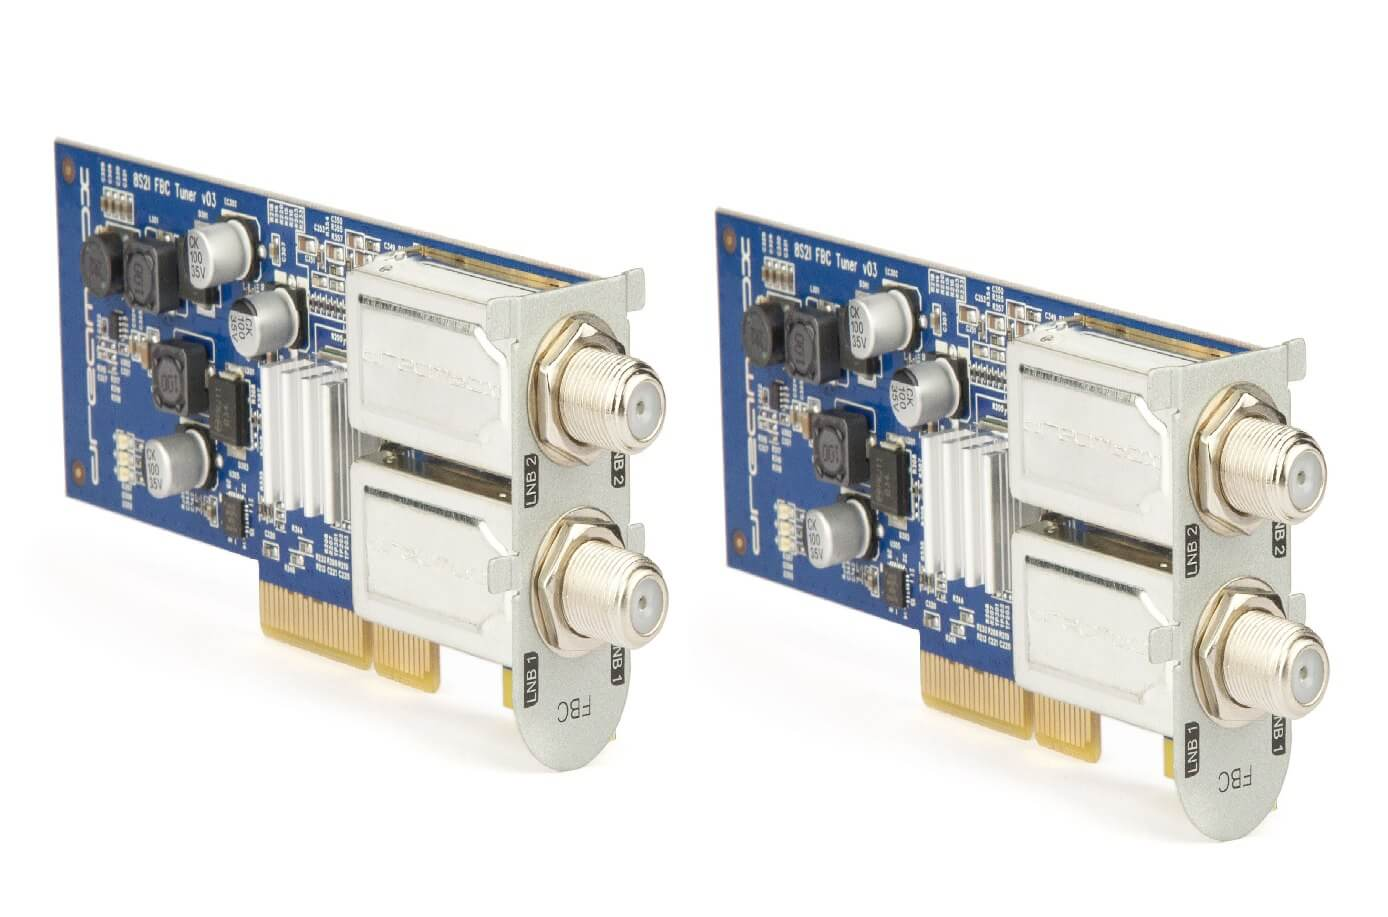 2 x Dual Full bandwidth capture tuners - fast and flexible.